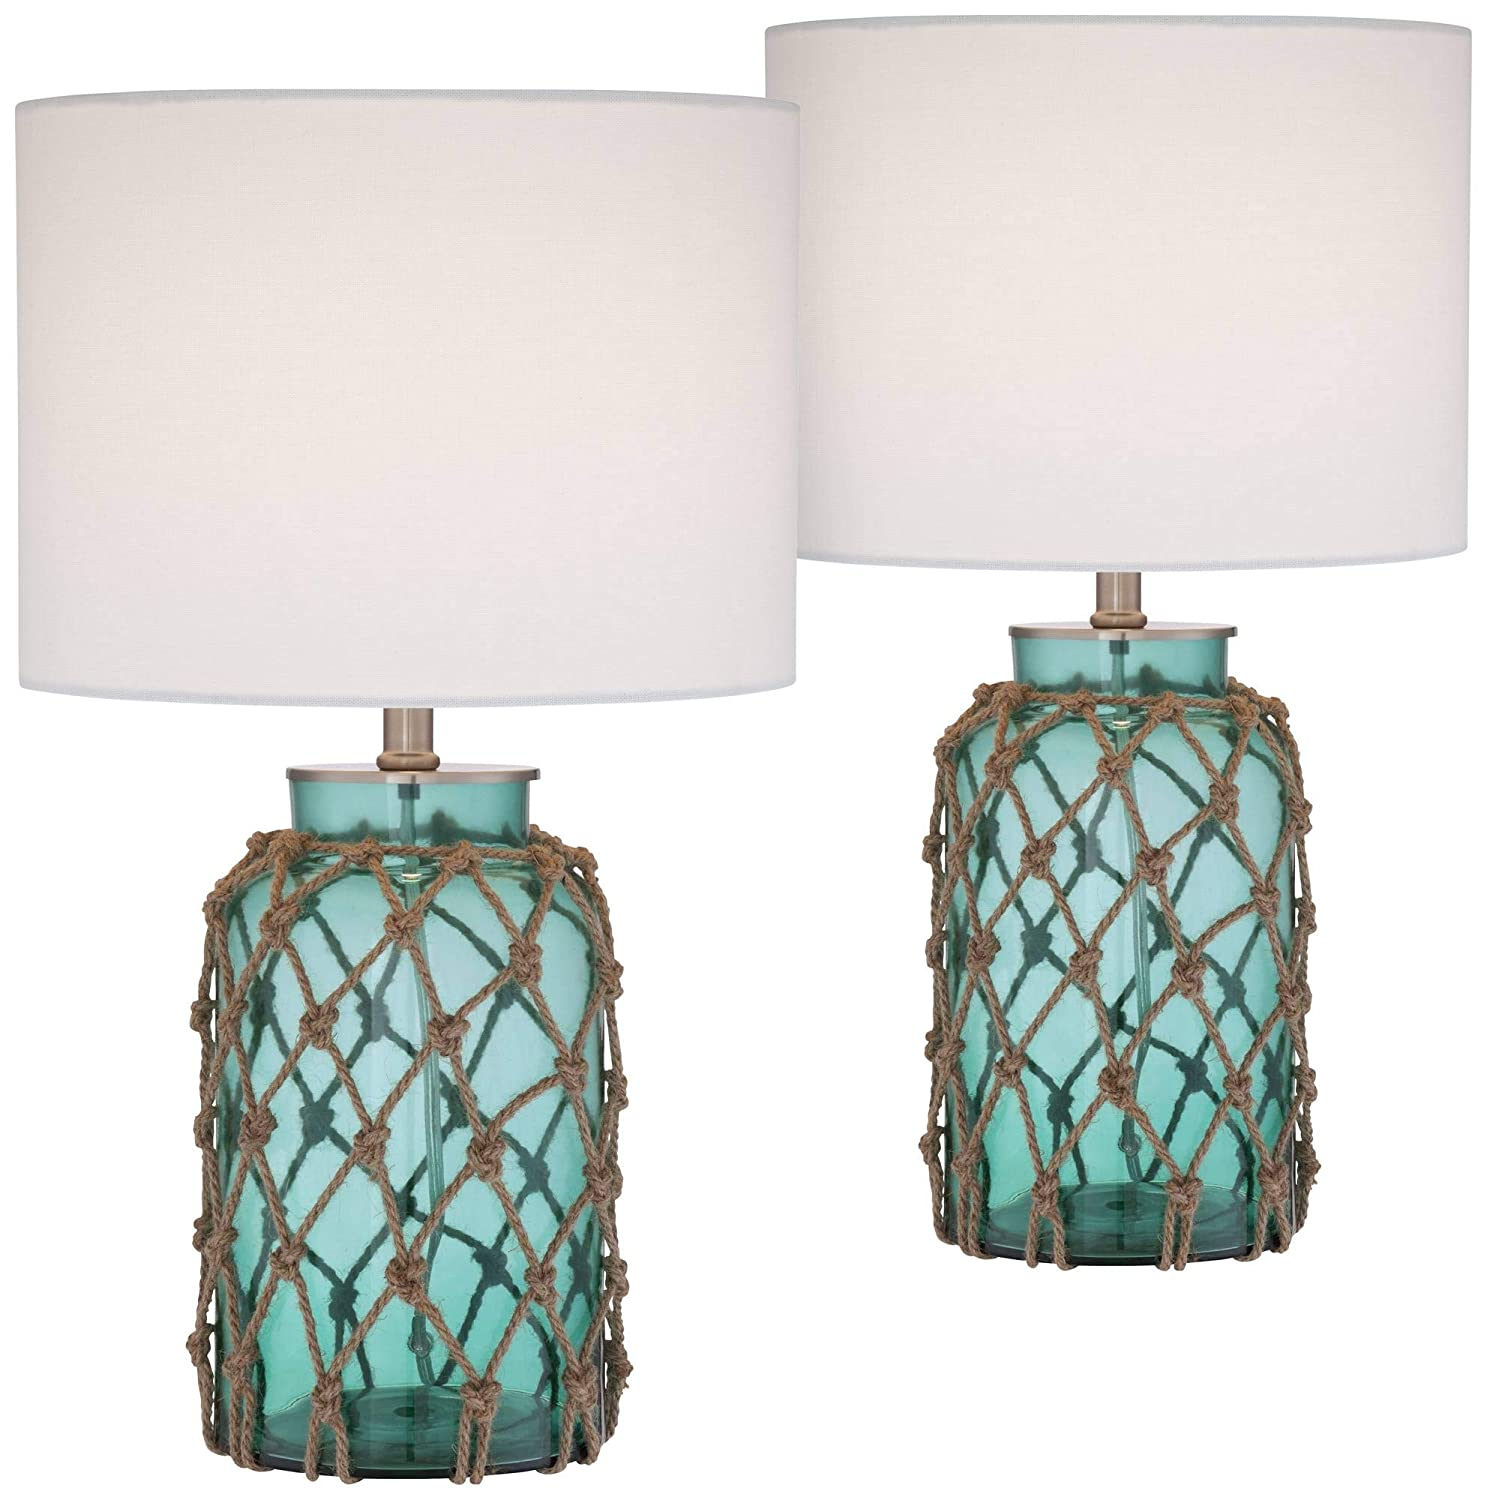 Crosby Nautical Accent Table Lamps Set of 2 Coastal Blue Green Rope Net Off White Drum Shade for Living Room Family Bedroom